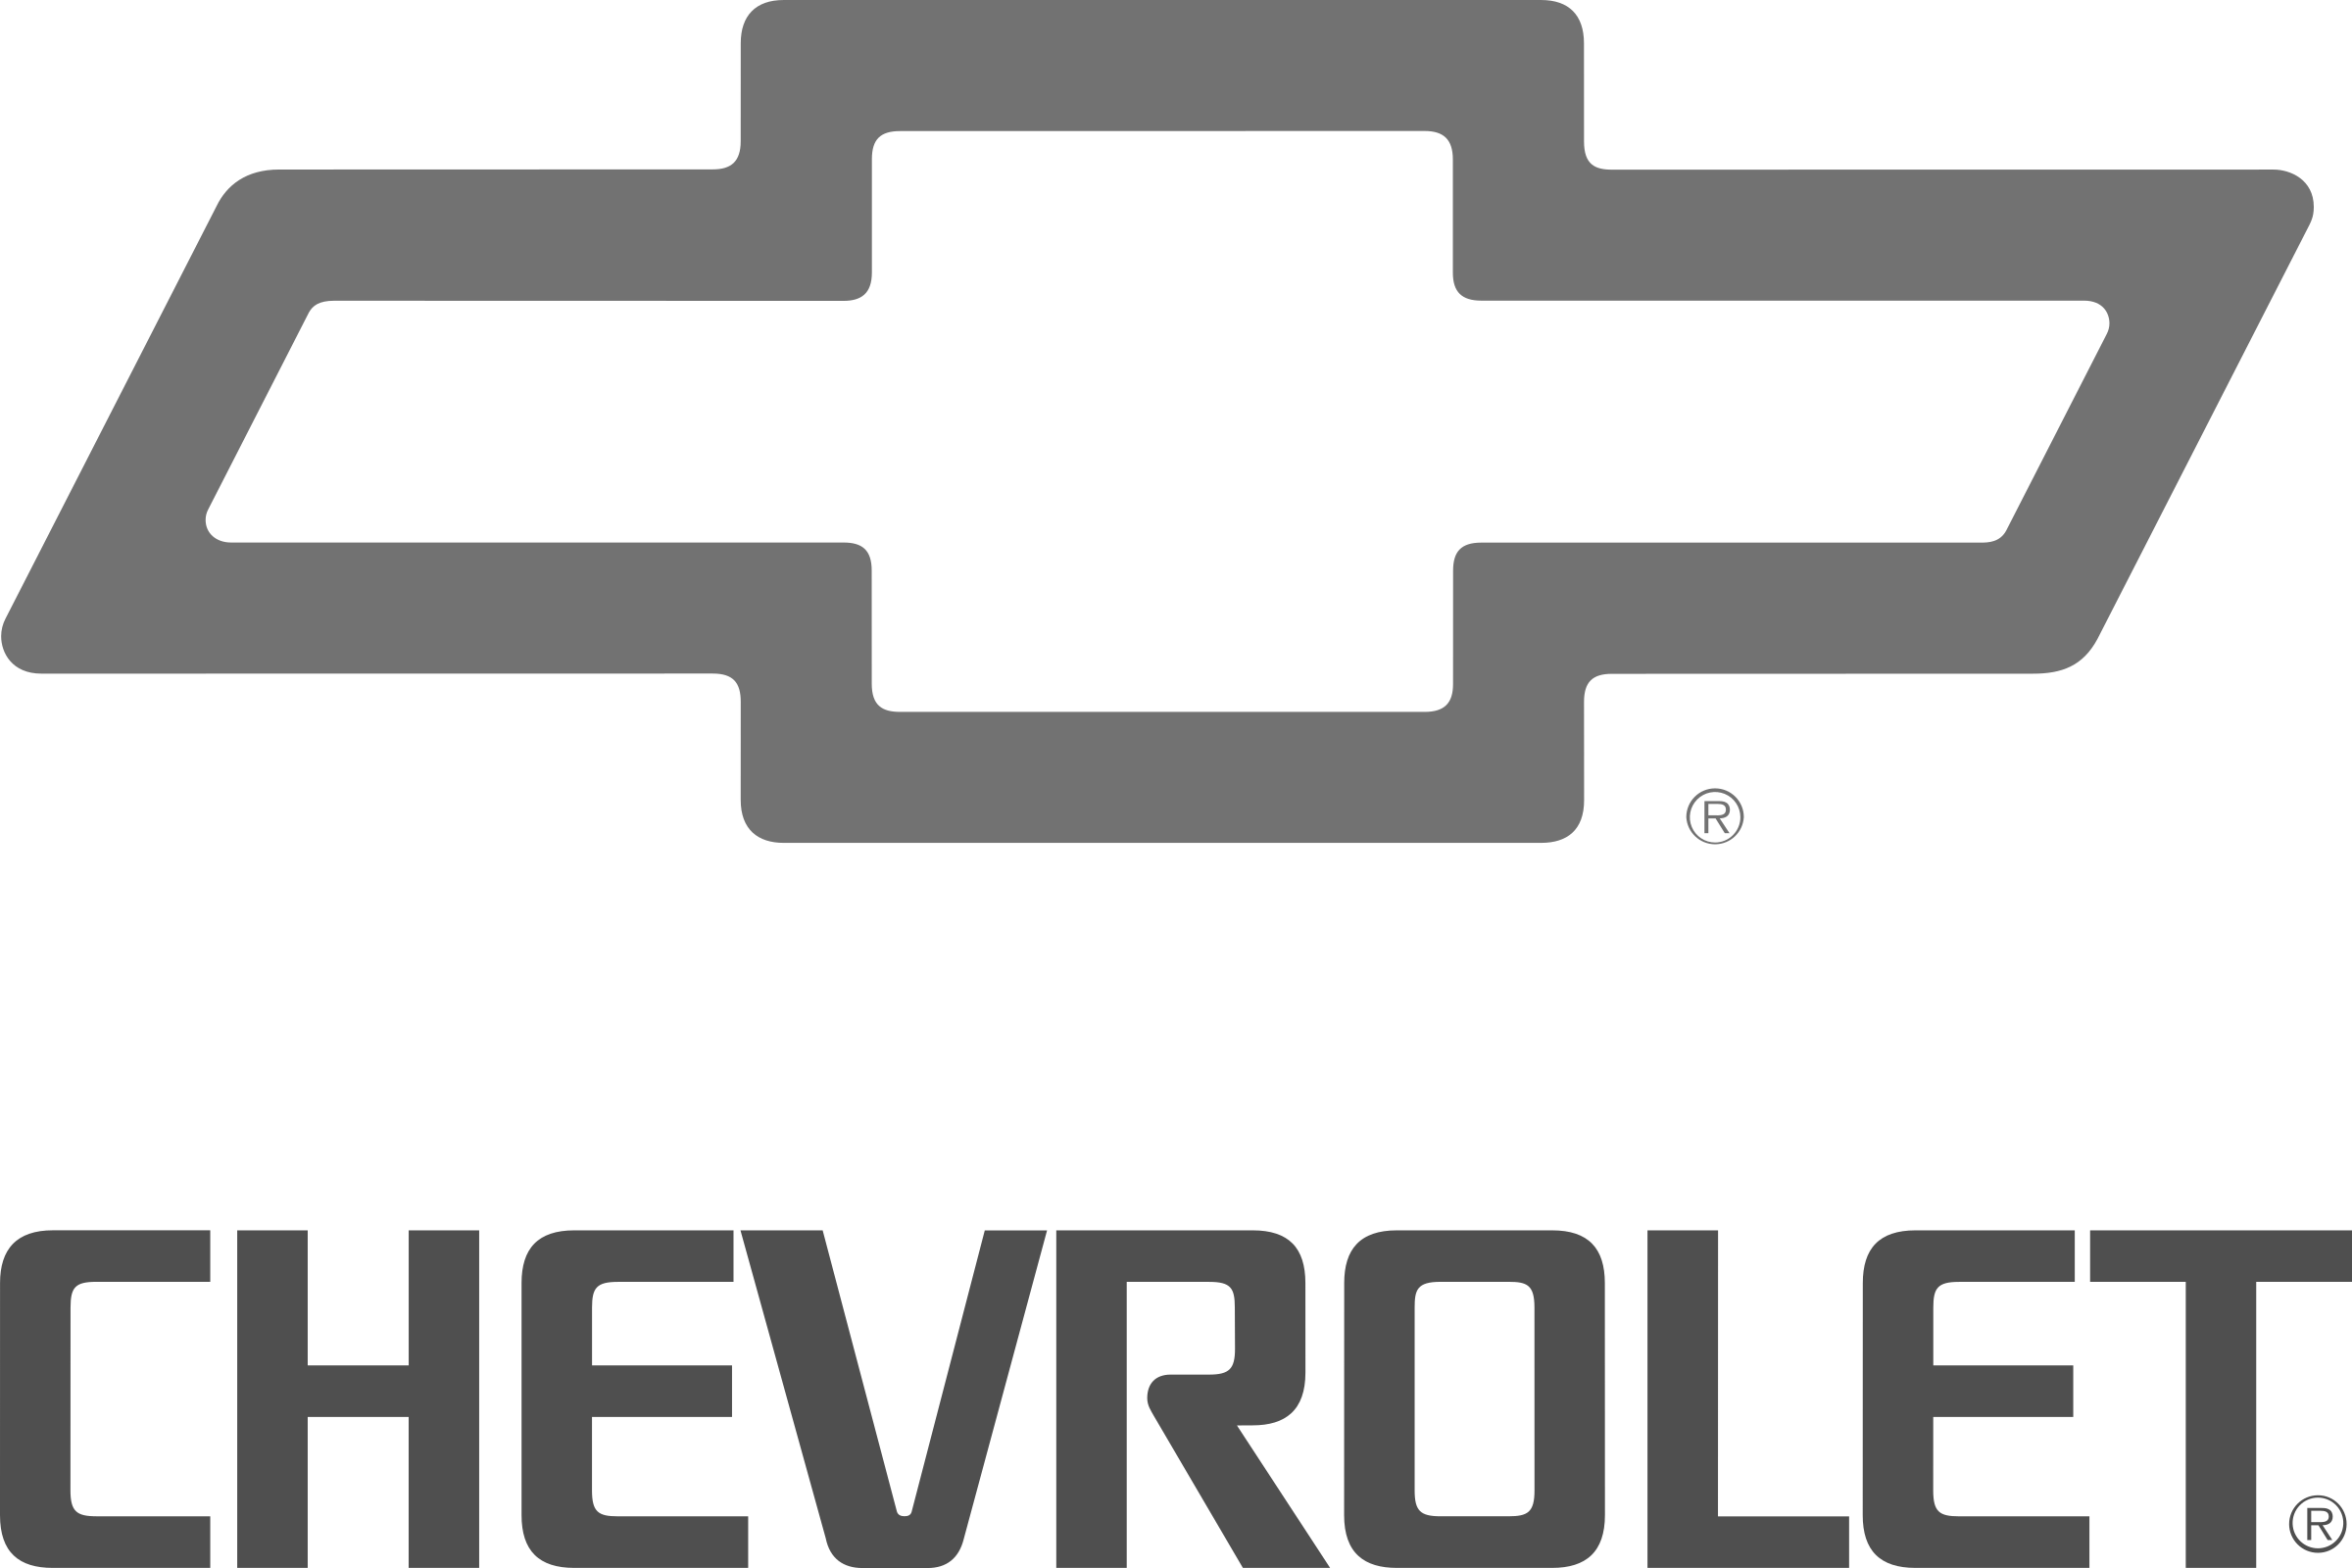 Chevrolet Logo Png Transparent Svg Vector Freebie Supply